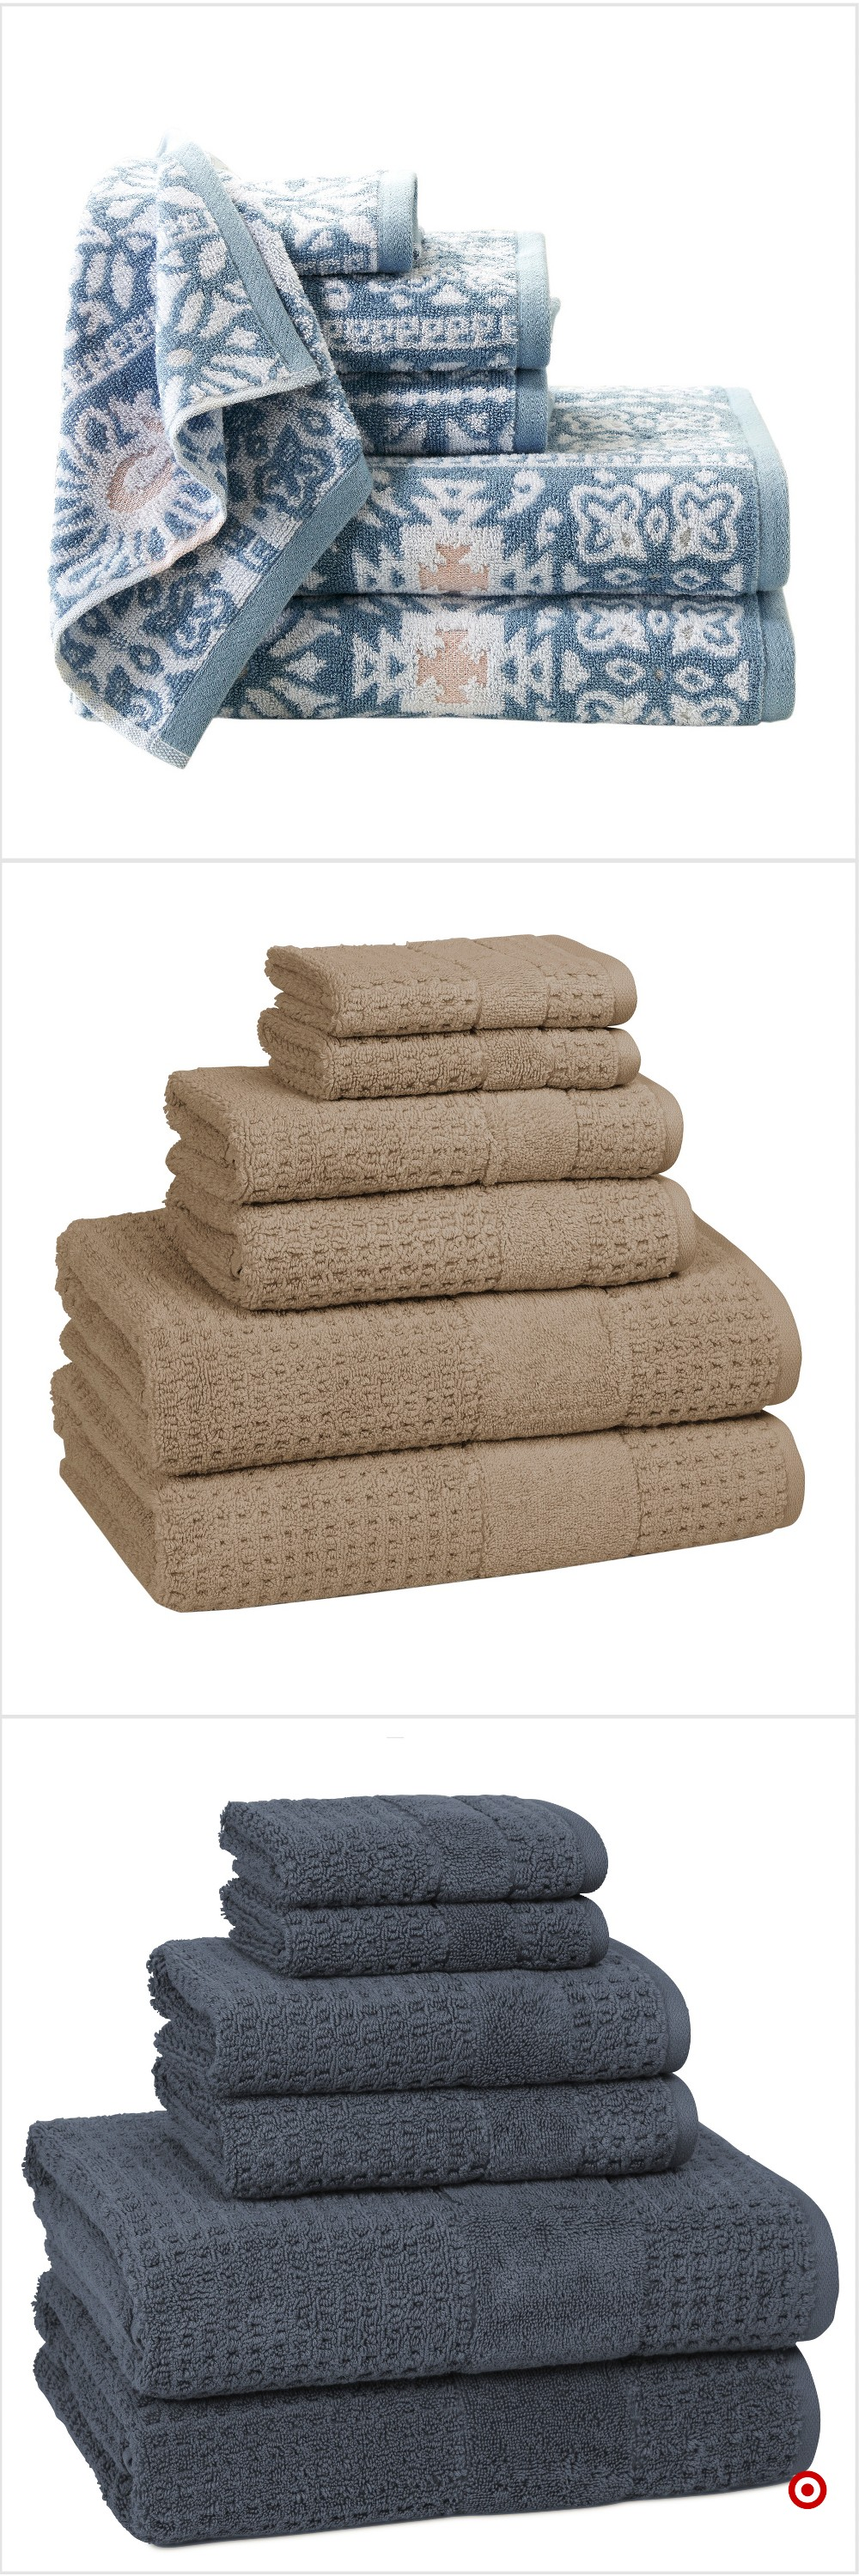 Shop Target For Bath Towels Sets You Will Love At Great Low Prices